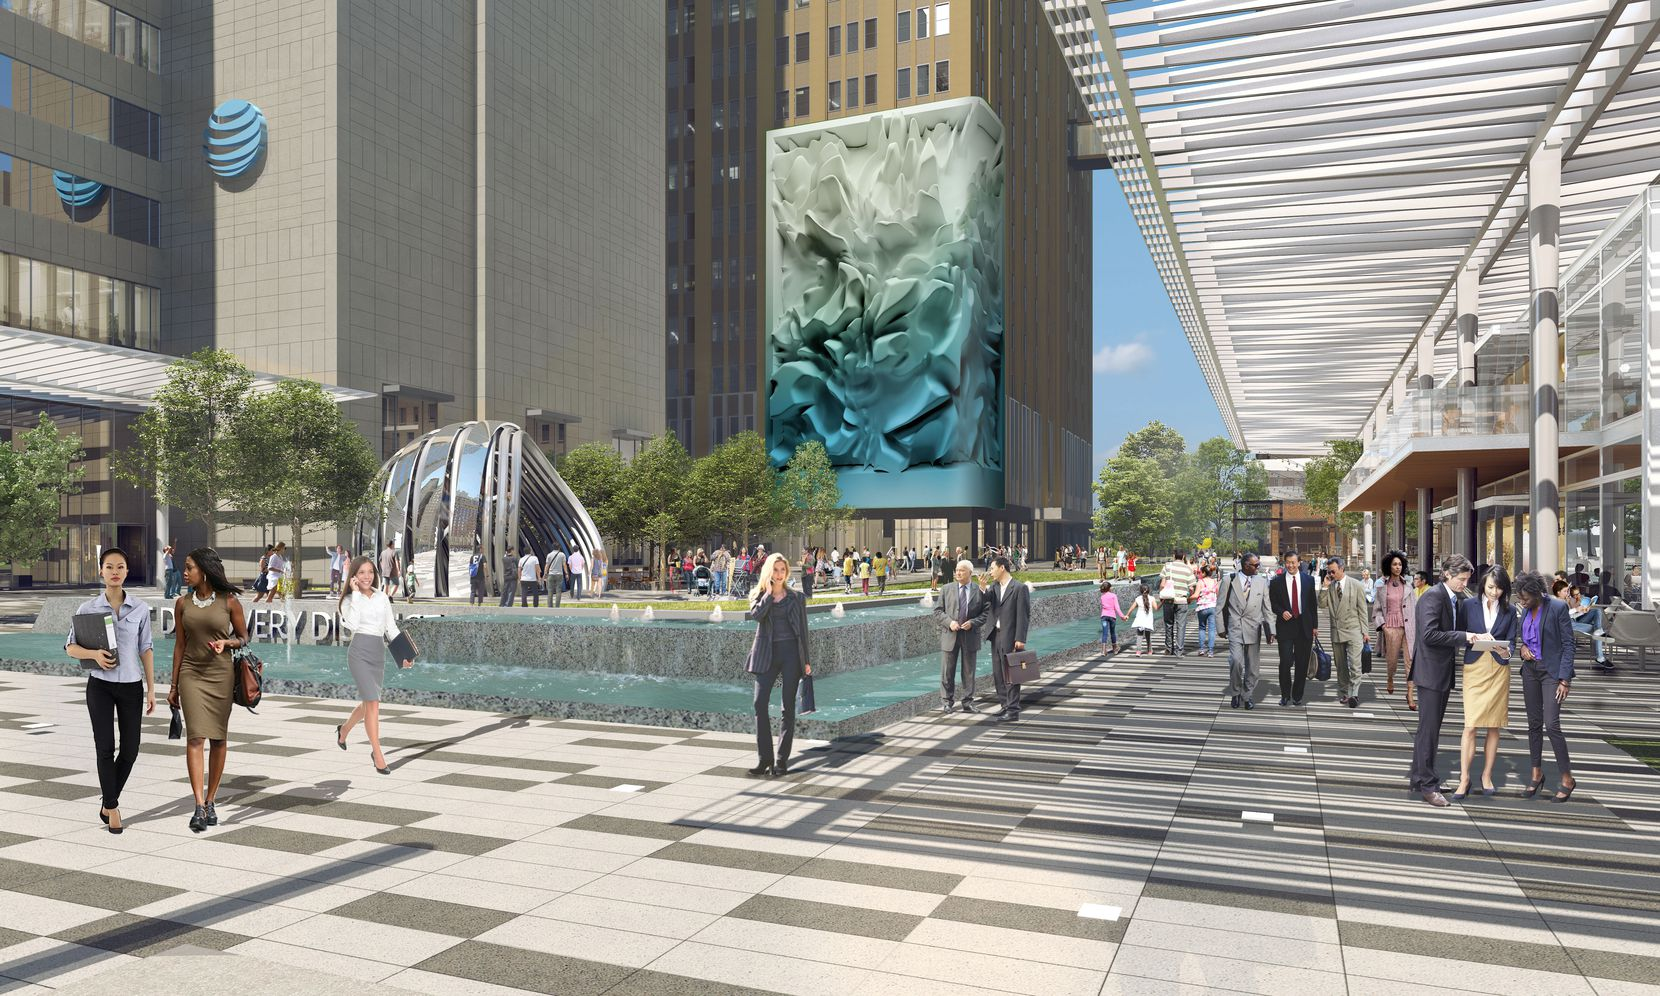 AT&T's downtown Dallas Discovery District, shown in a rendering, starts opening later this year.